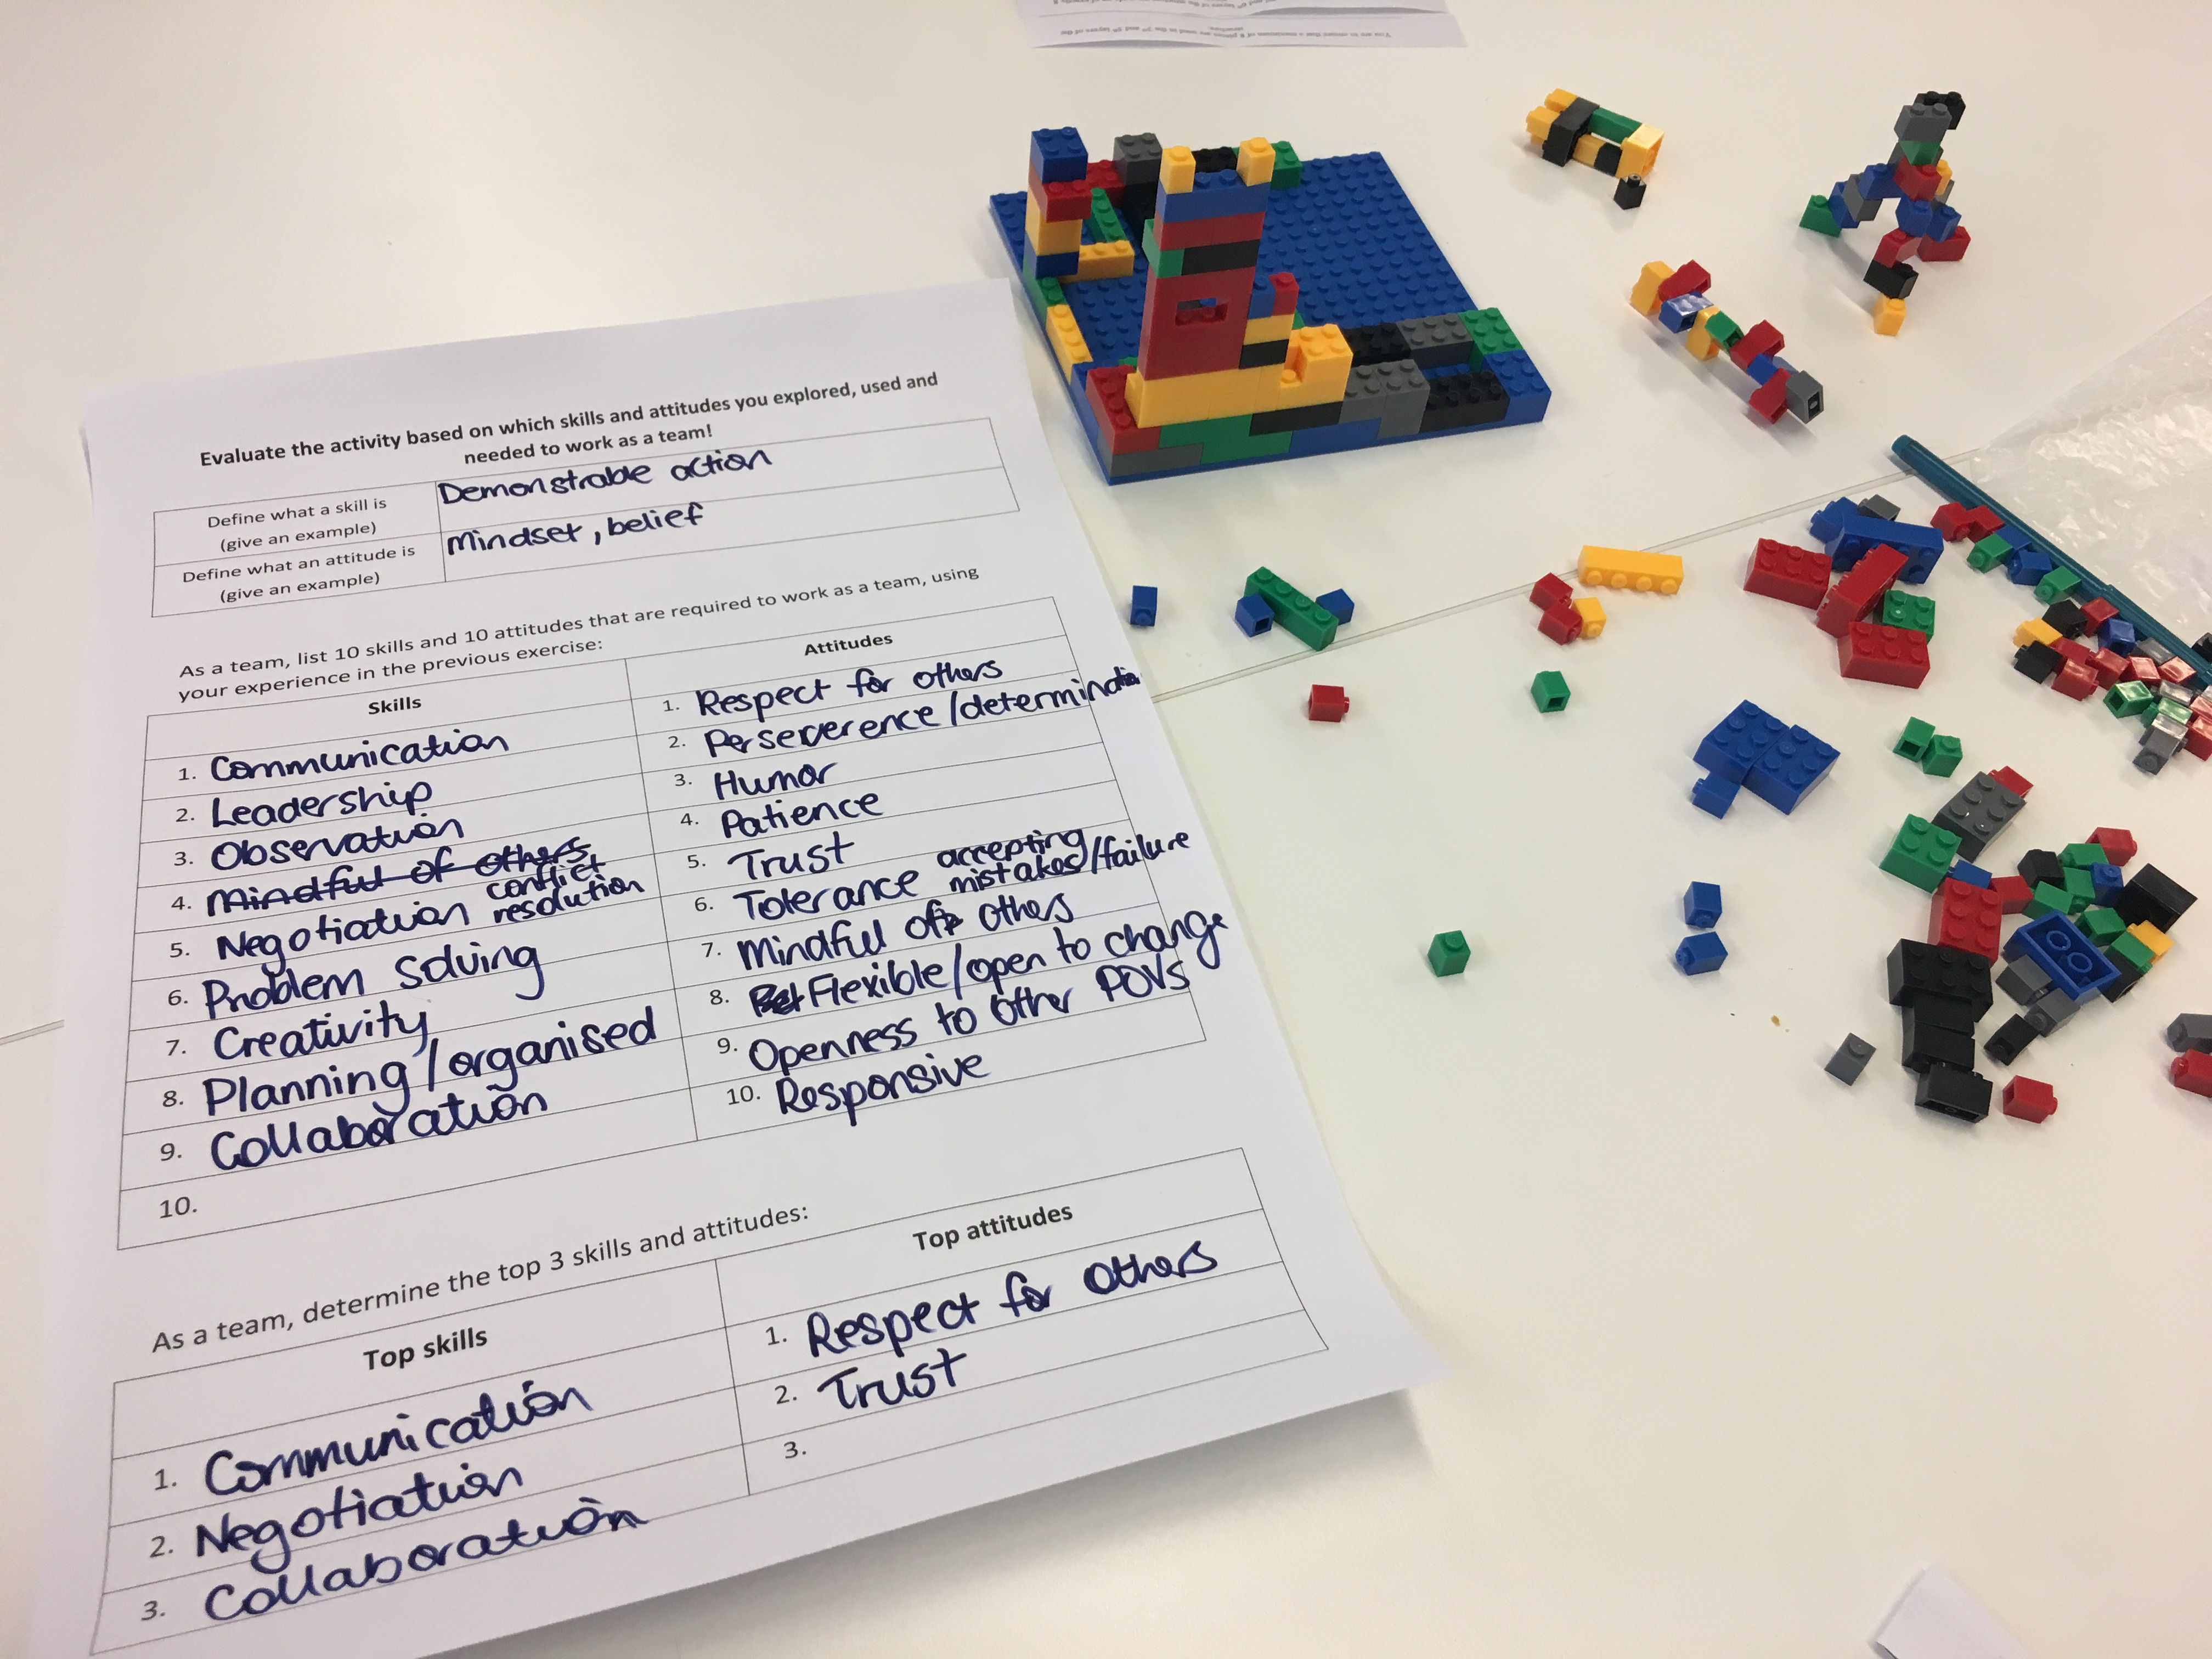 a piece of paper from an activity at the forum and colourful lego pieces on a desk